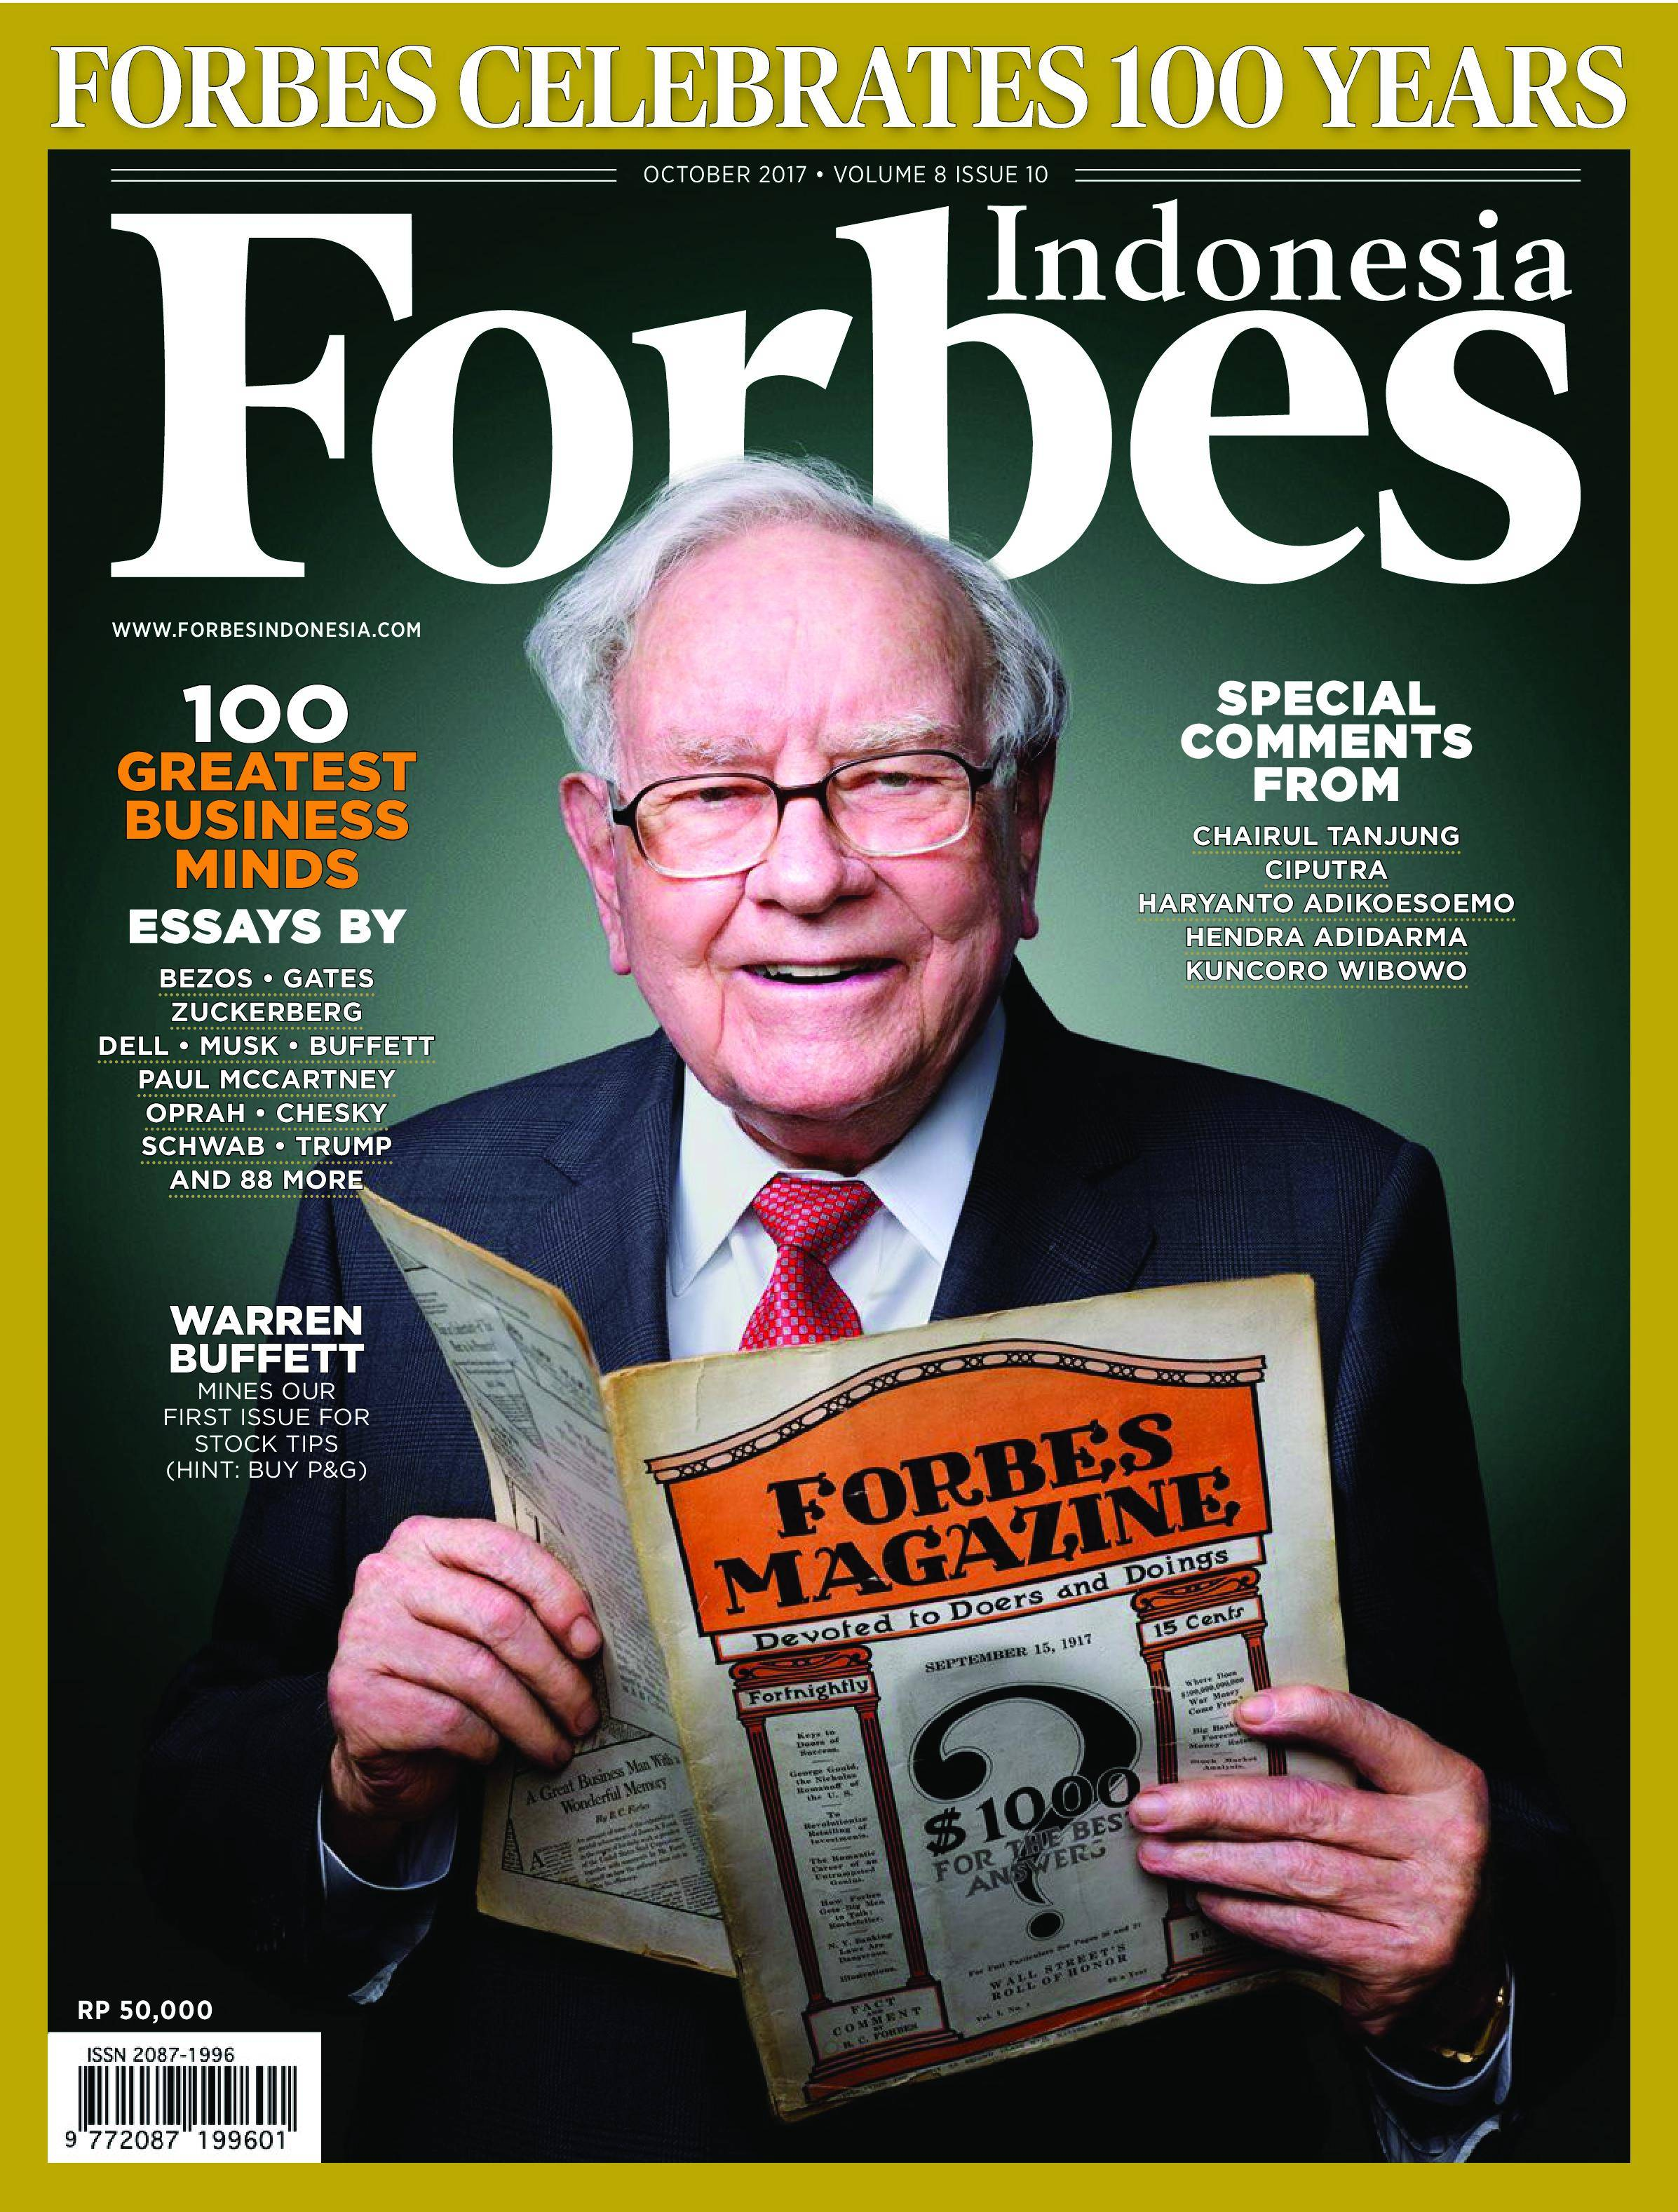 image sour forbes publishes - HD 2393×3154